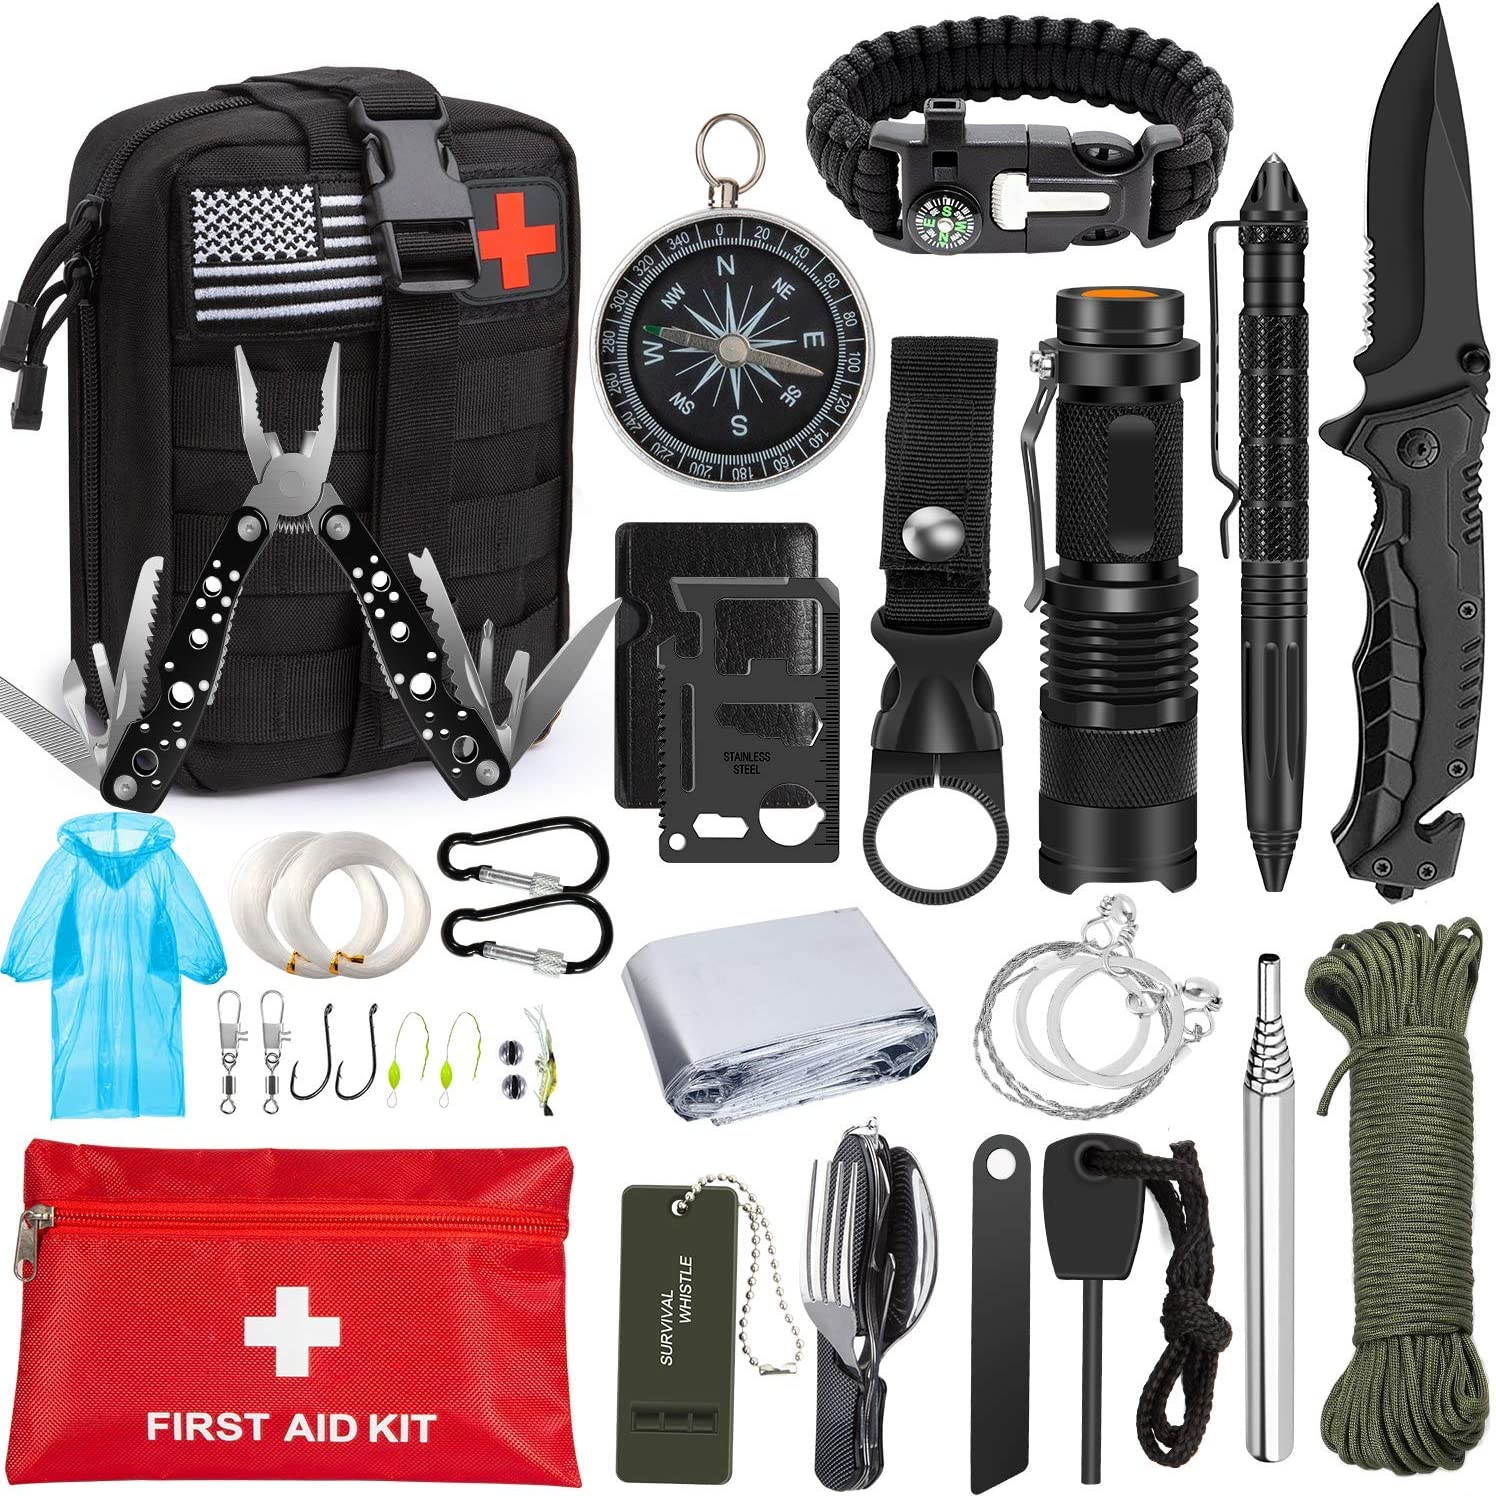 Emergency Survival Kit 47 in 1 Professional Survival Gear Tool First Aid Kit SOS Emergency Tactical Flashlight Knife Pliers Pen Blanket Bracelets Compass with Molle Pouch for Camping Adventures: Health & Personal Care